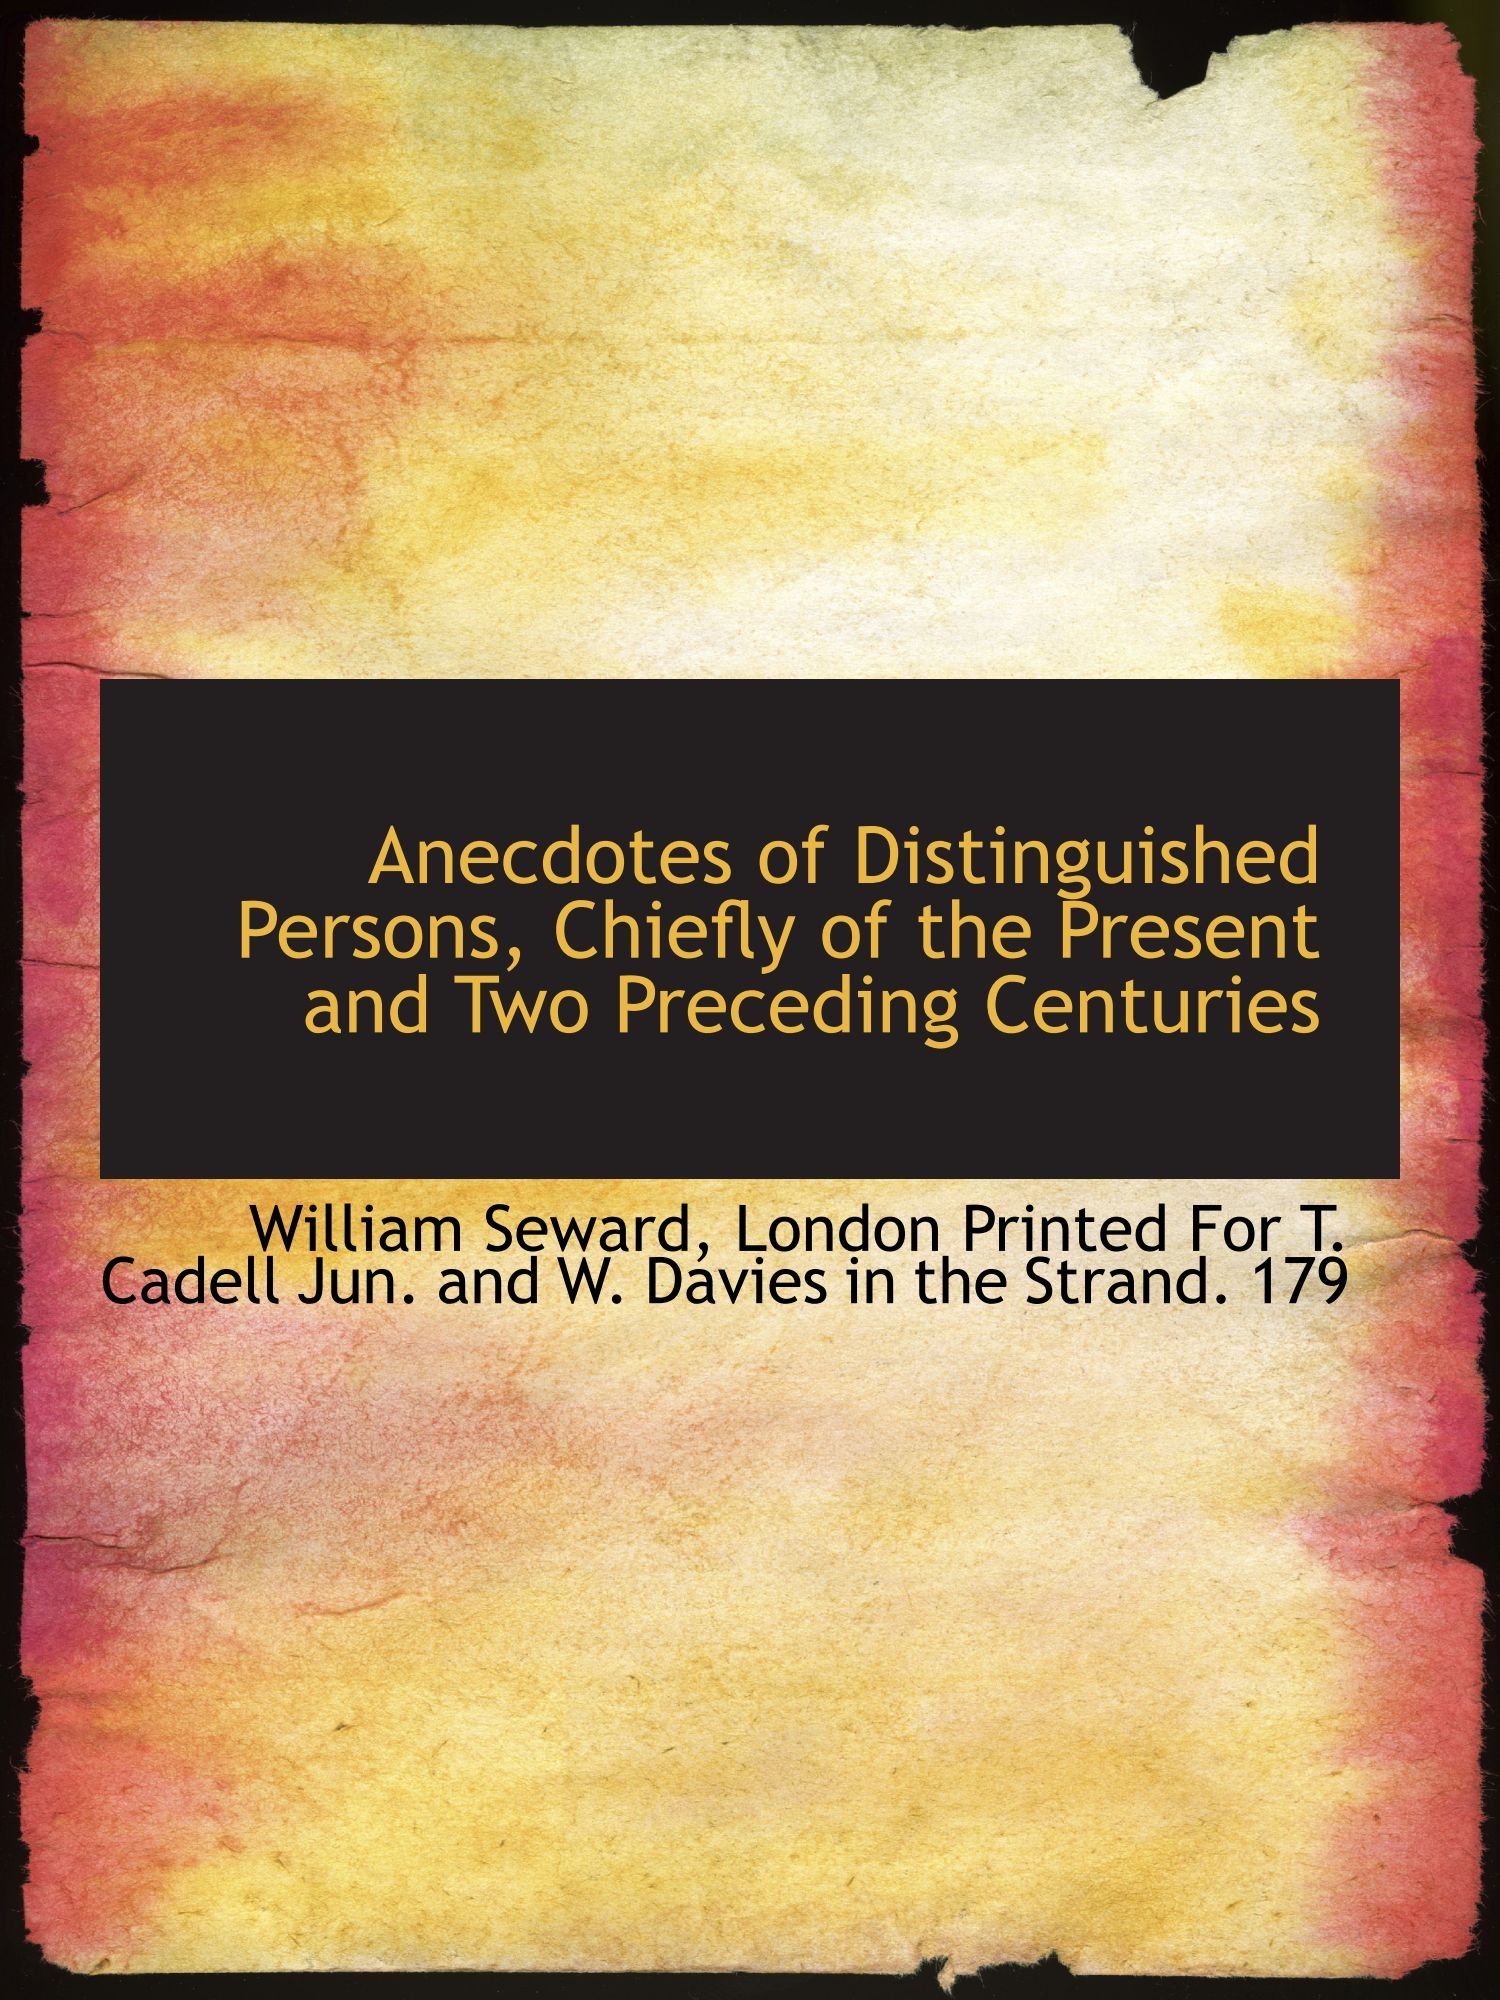 Download Anecdotes of Distinguished Persons, Chiefly of the Present and Two Preceding Centuries PDF